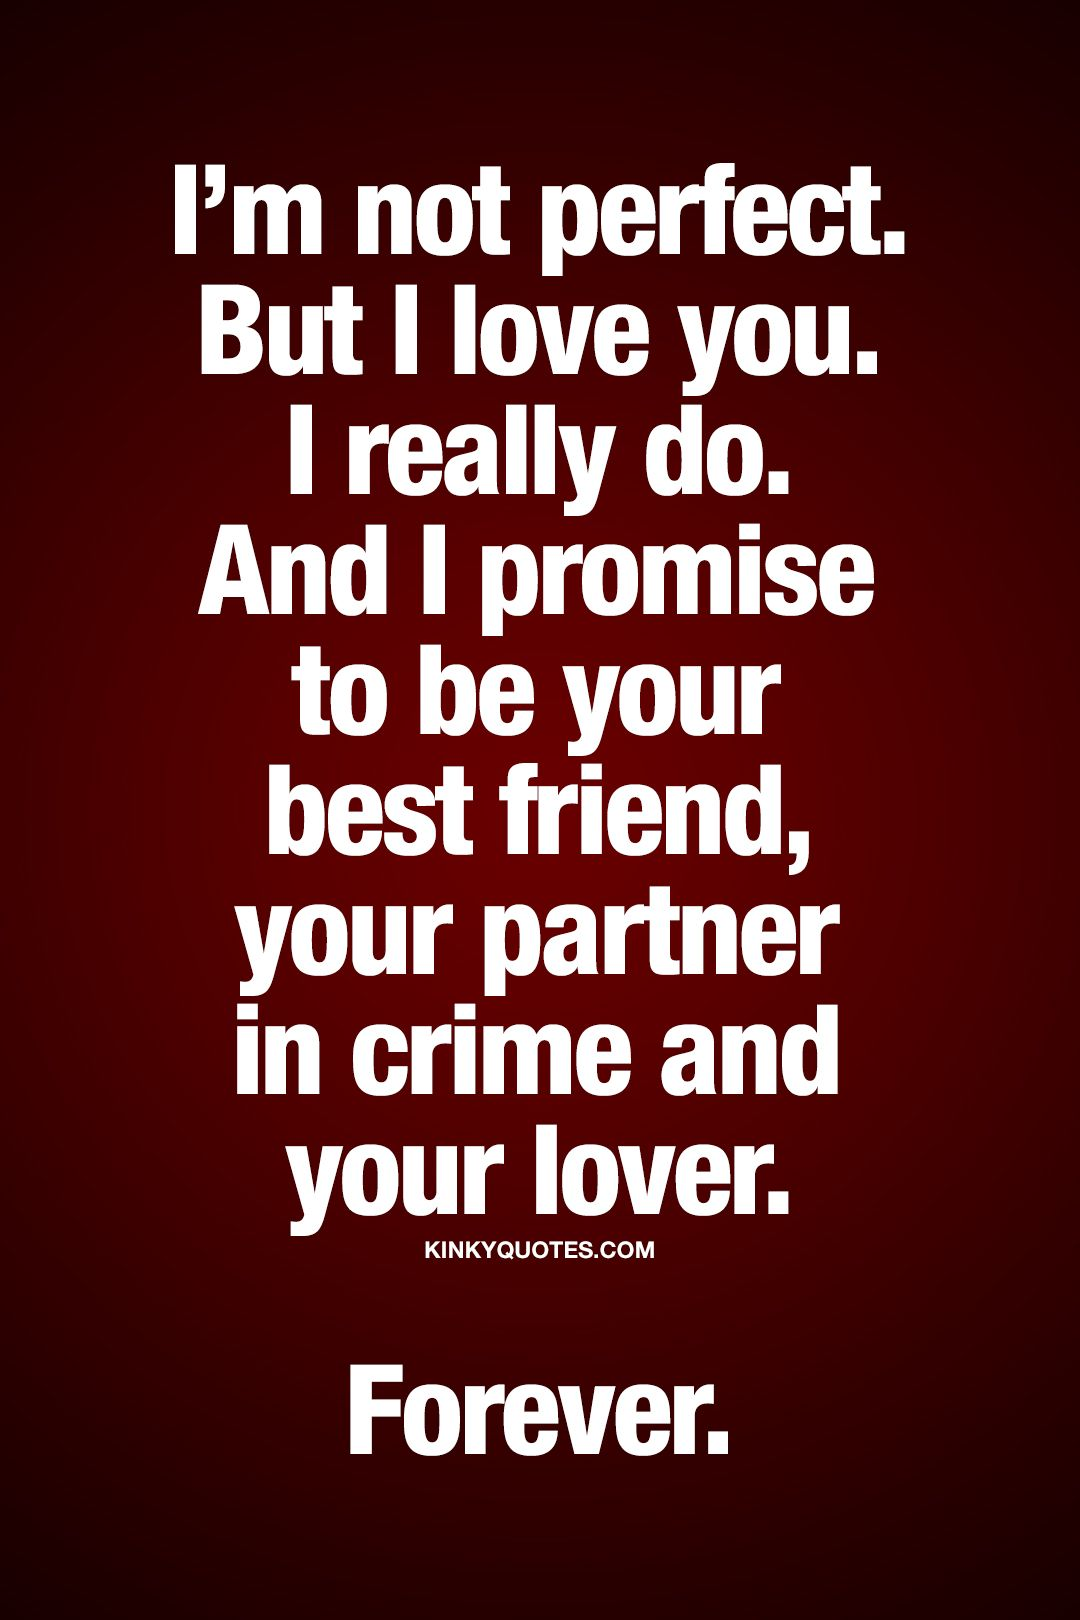 Dark Crime Love You Friend Pic Love You Friendship Quotes Your A Forever Relationship Can Be Yours Relationship Crime But I Love I Really I Promise To Be Your Yourpartner